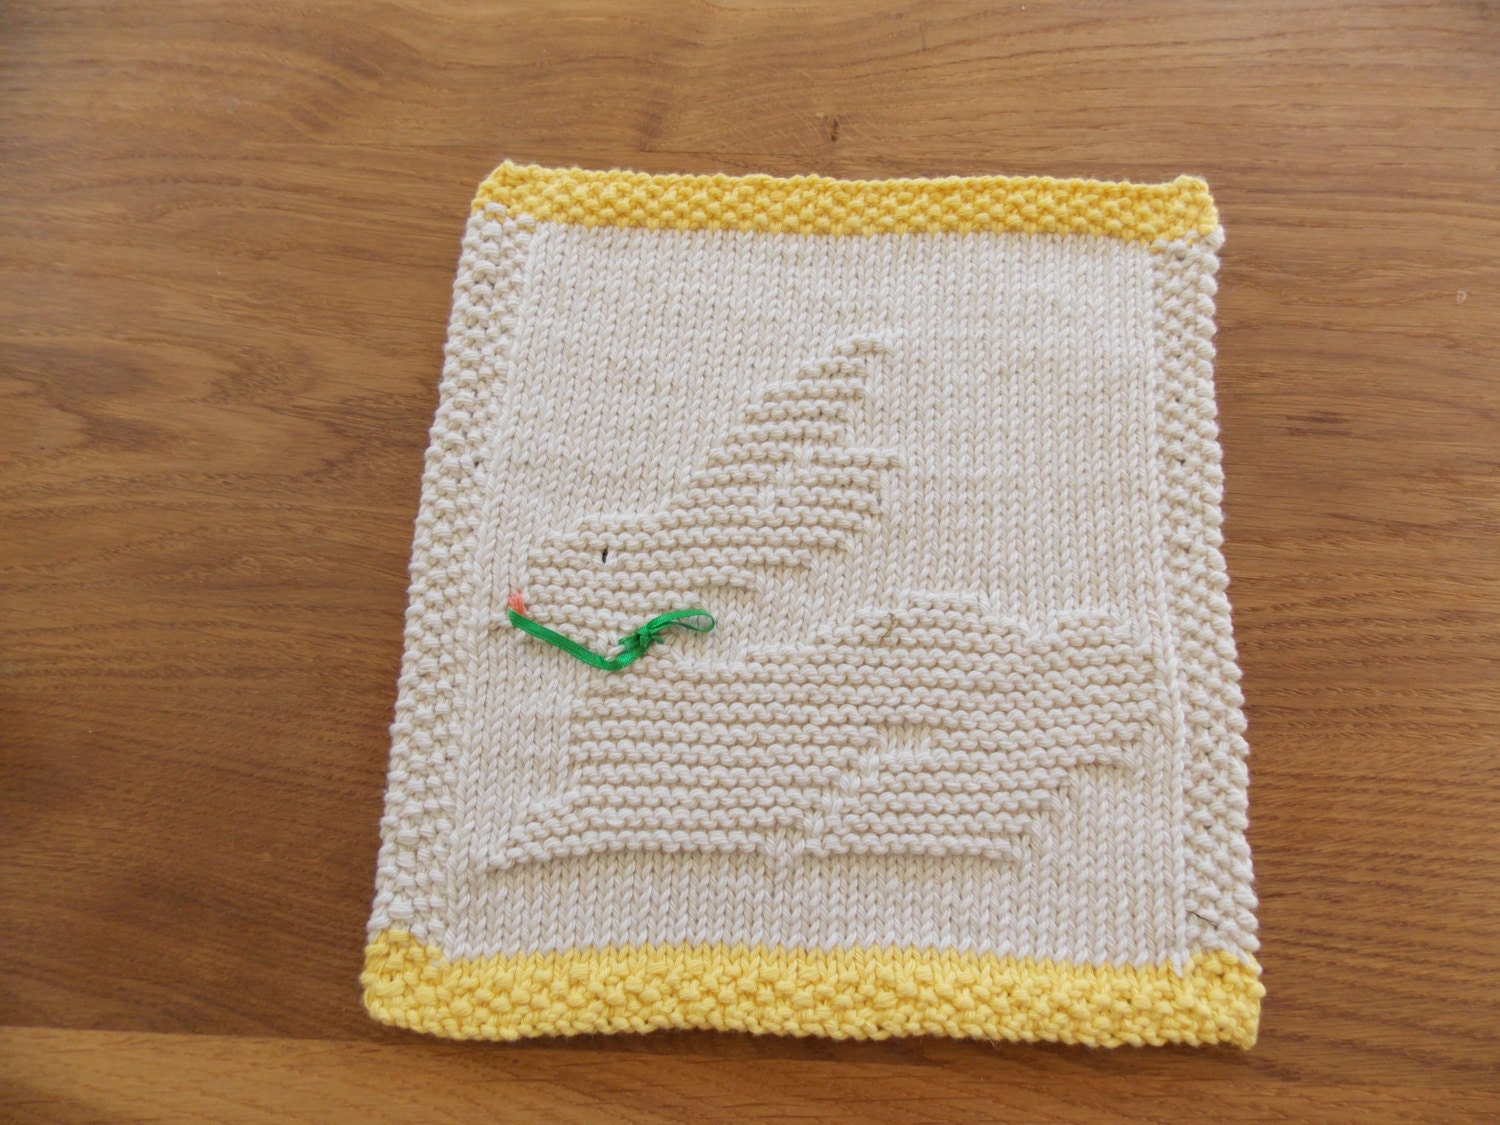 Knitted Dishcloth Patterns For Easter : Easter bunny dishcloth knitting pattern